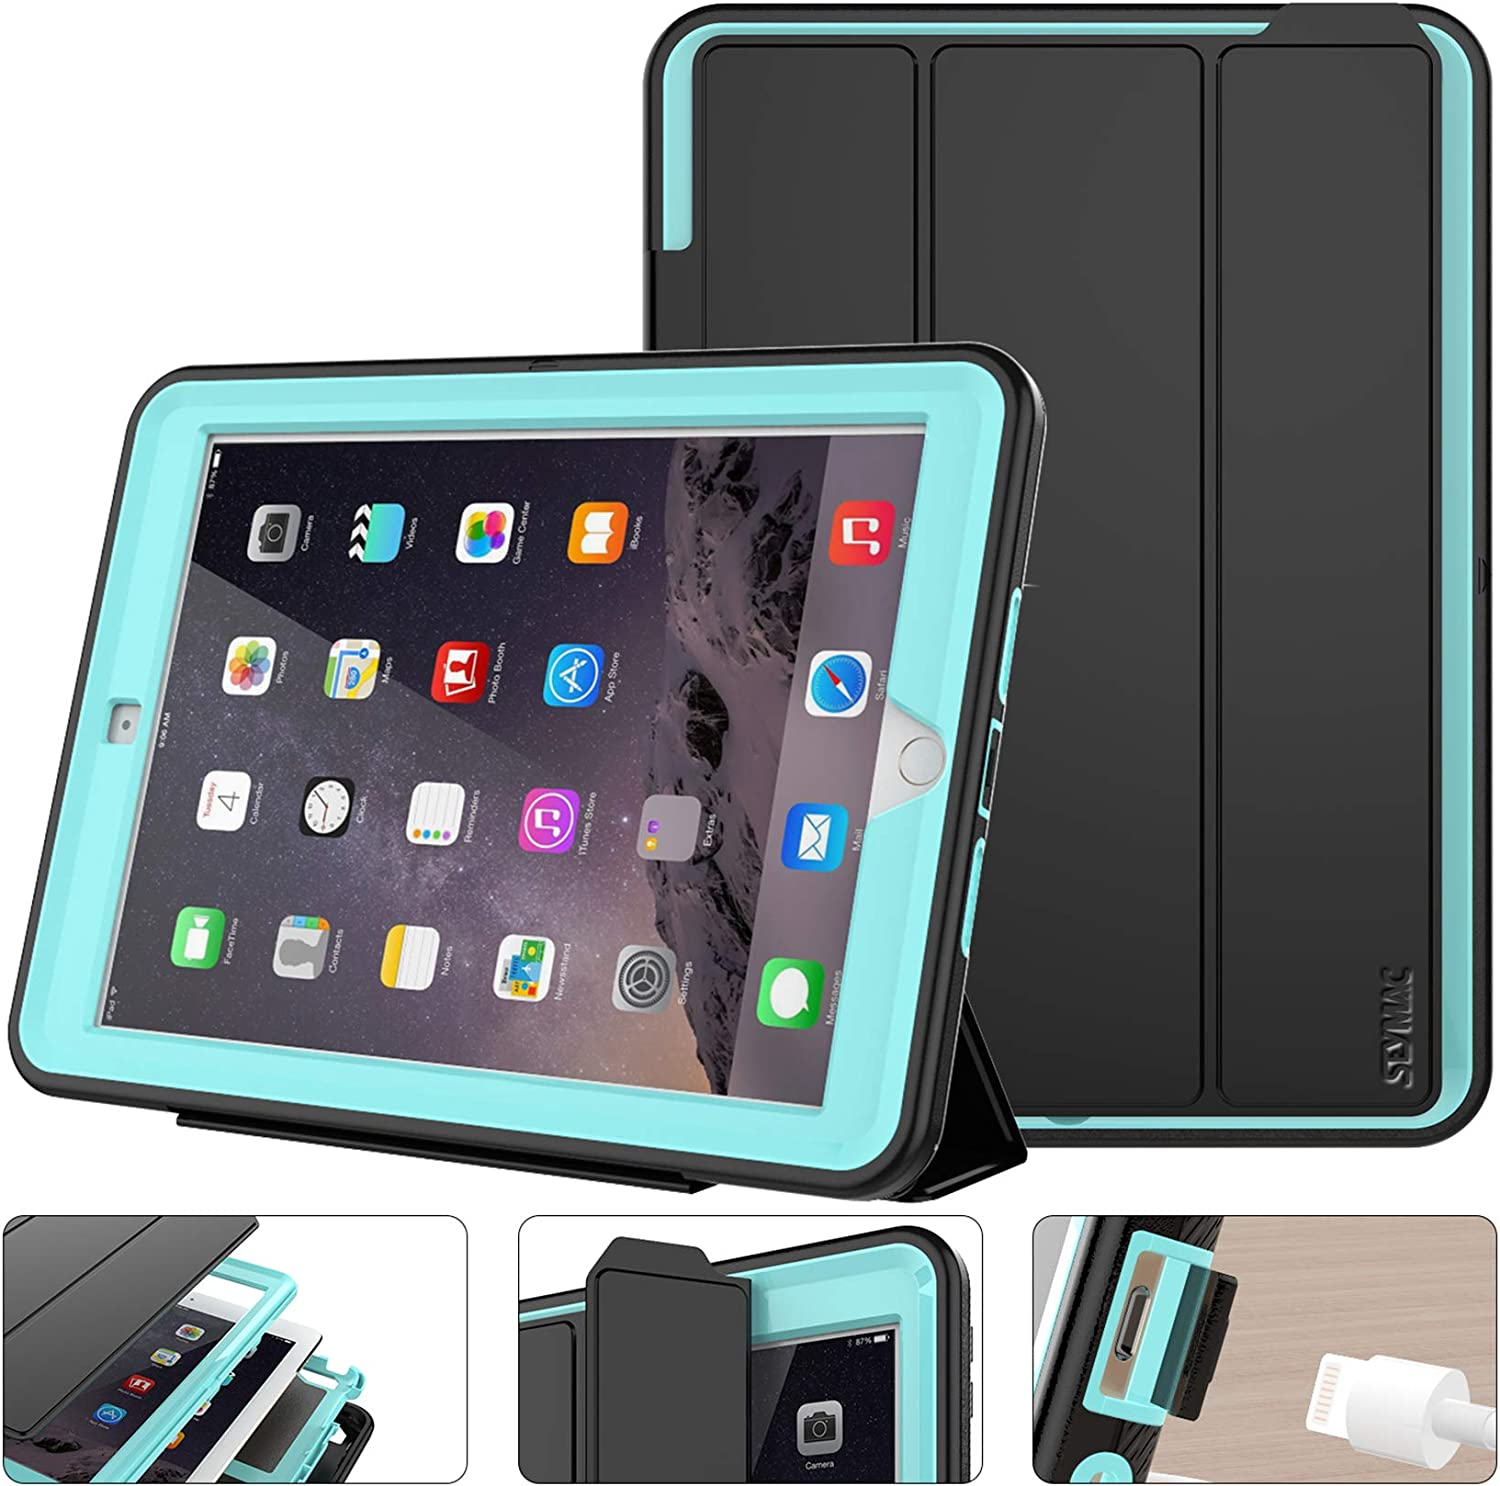 SEYMAC stock Case for iPad 5th/6th Generation 9.7 inch, Heavy Duty Shock-Proof Smart Cover Auto Sleep Wake with Leather Stand Feature for iPad 2017/2018 Released (Black/Sky Blue)